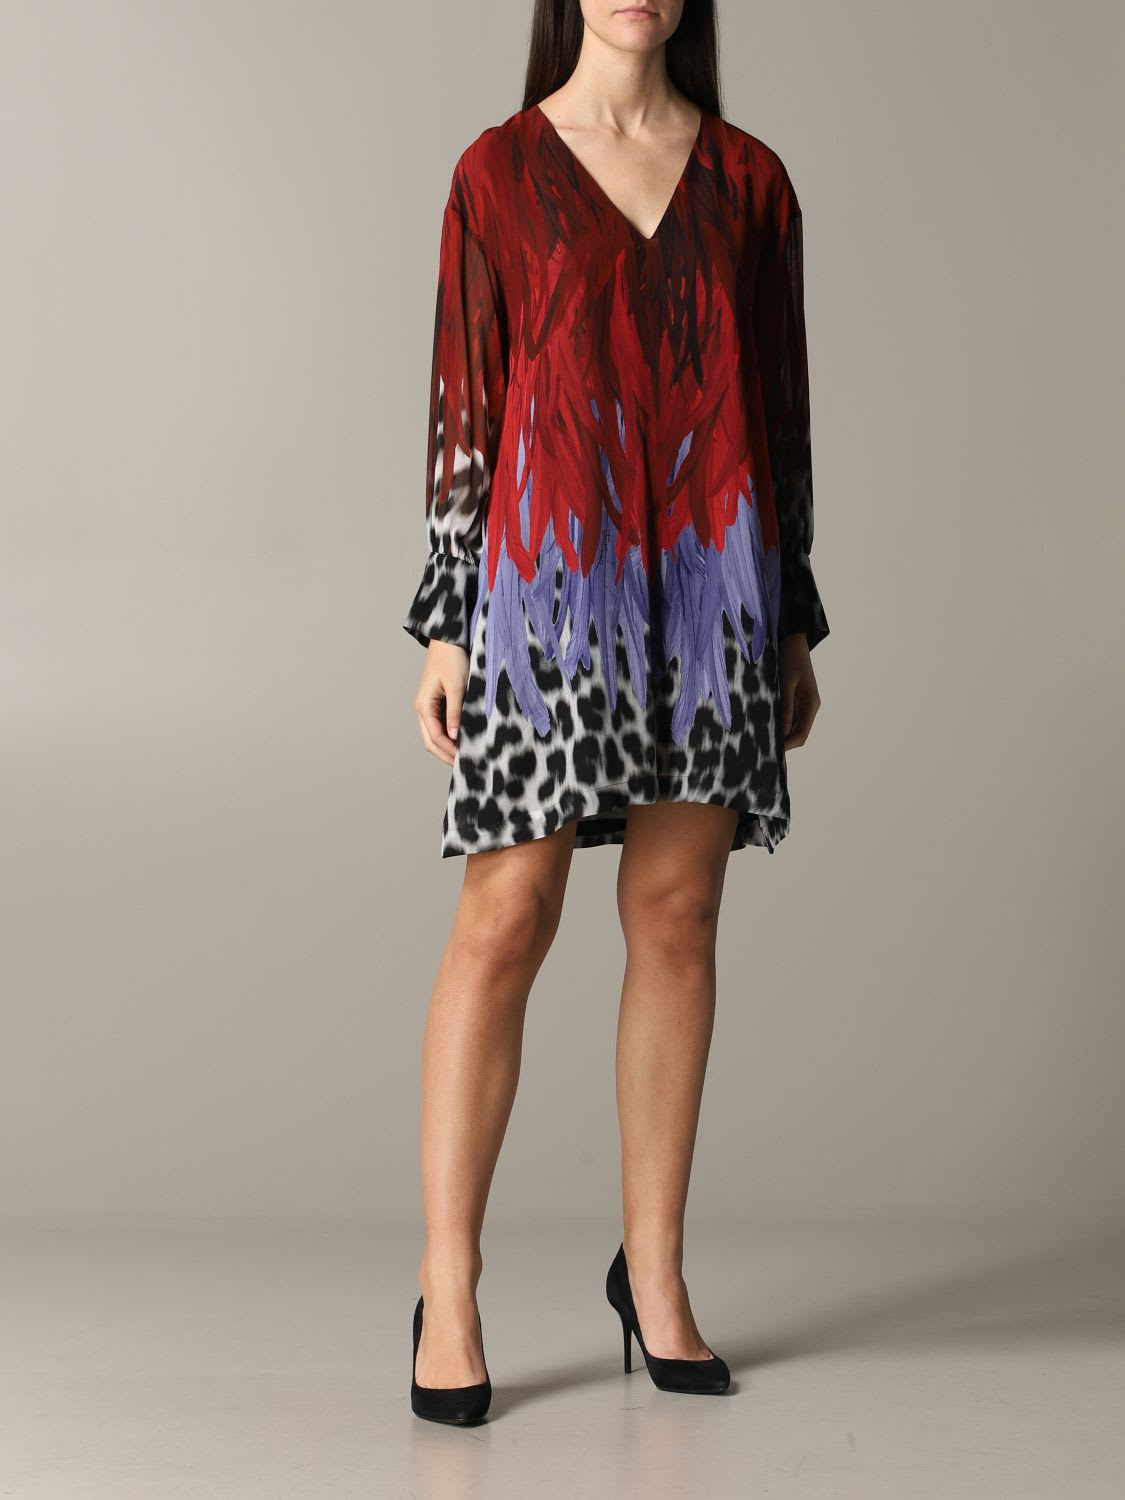 Buy Just Cavalli Dress Just Cavalli Dress With Animal Print And Feathers online, shop Just Cavalli with free shipping